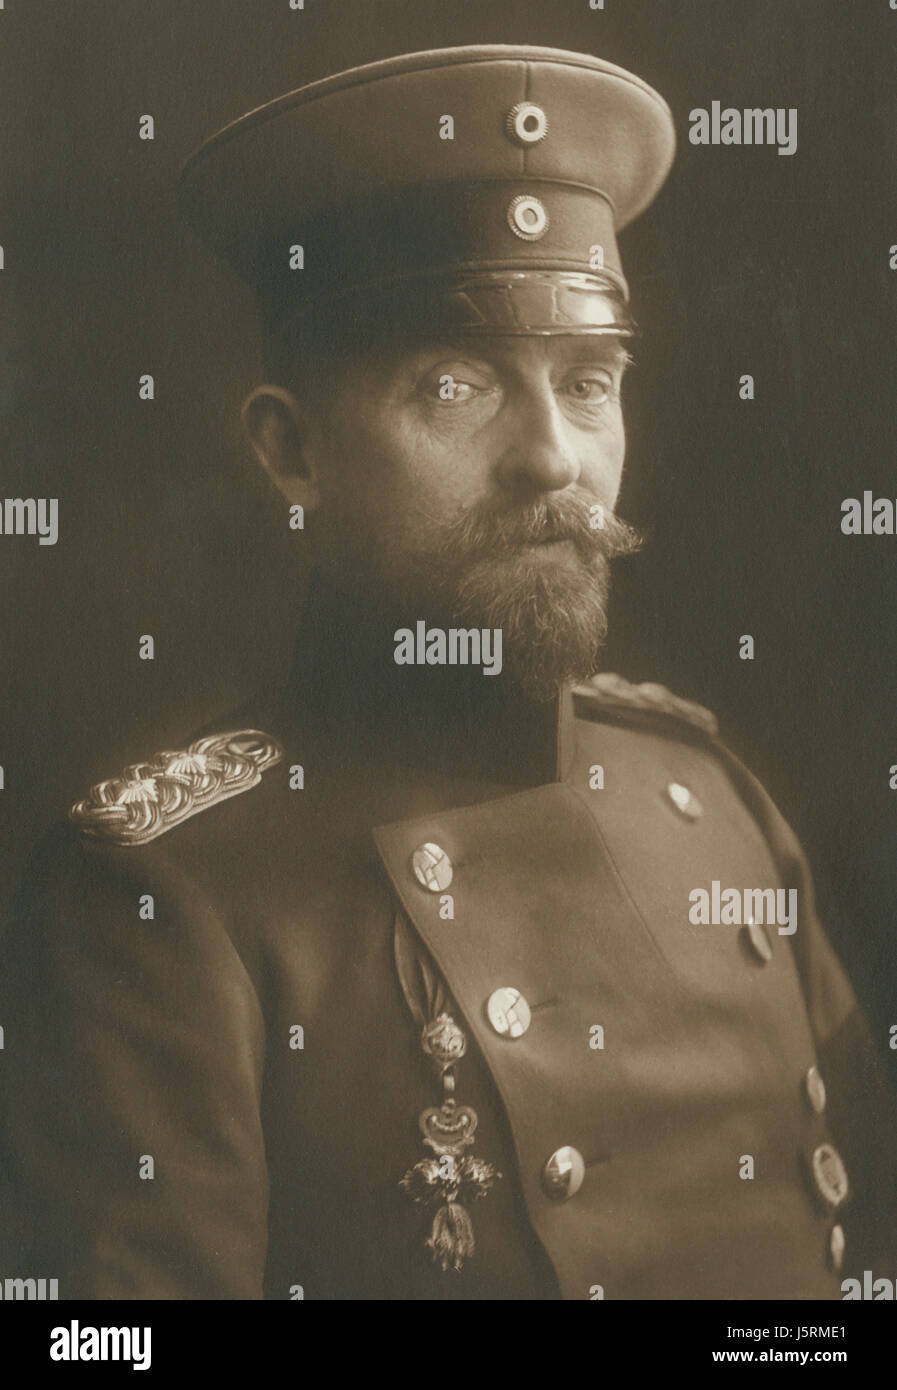 Ferdinand I (1865-1927), King of Romania 1914-27, Portrait, 1915 - Stock Image